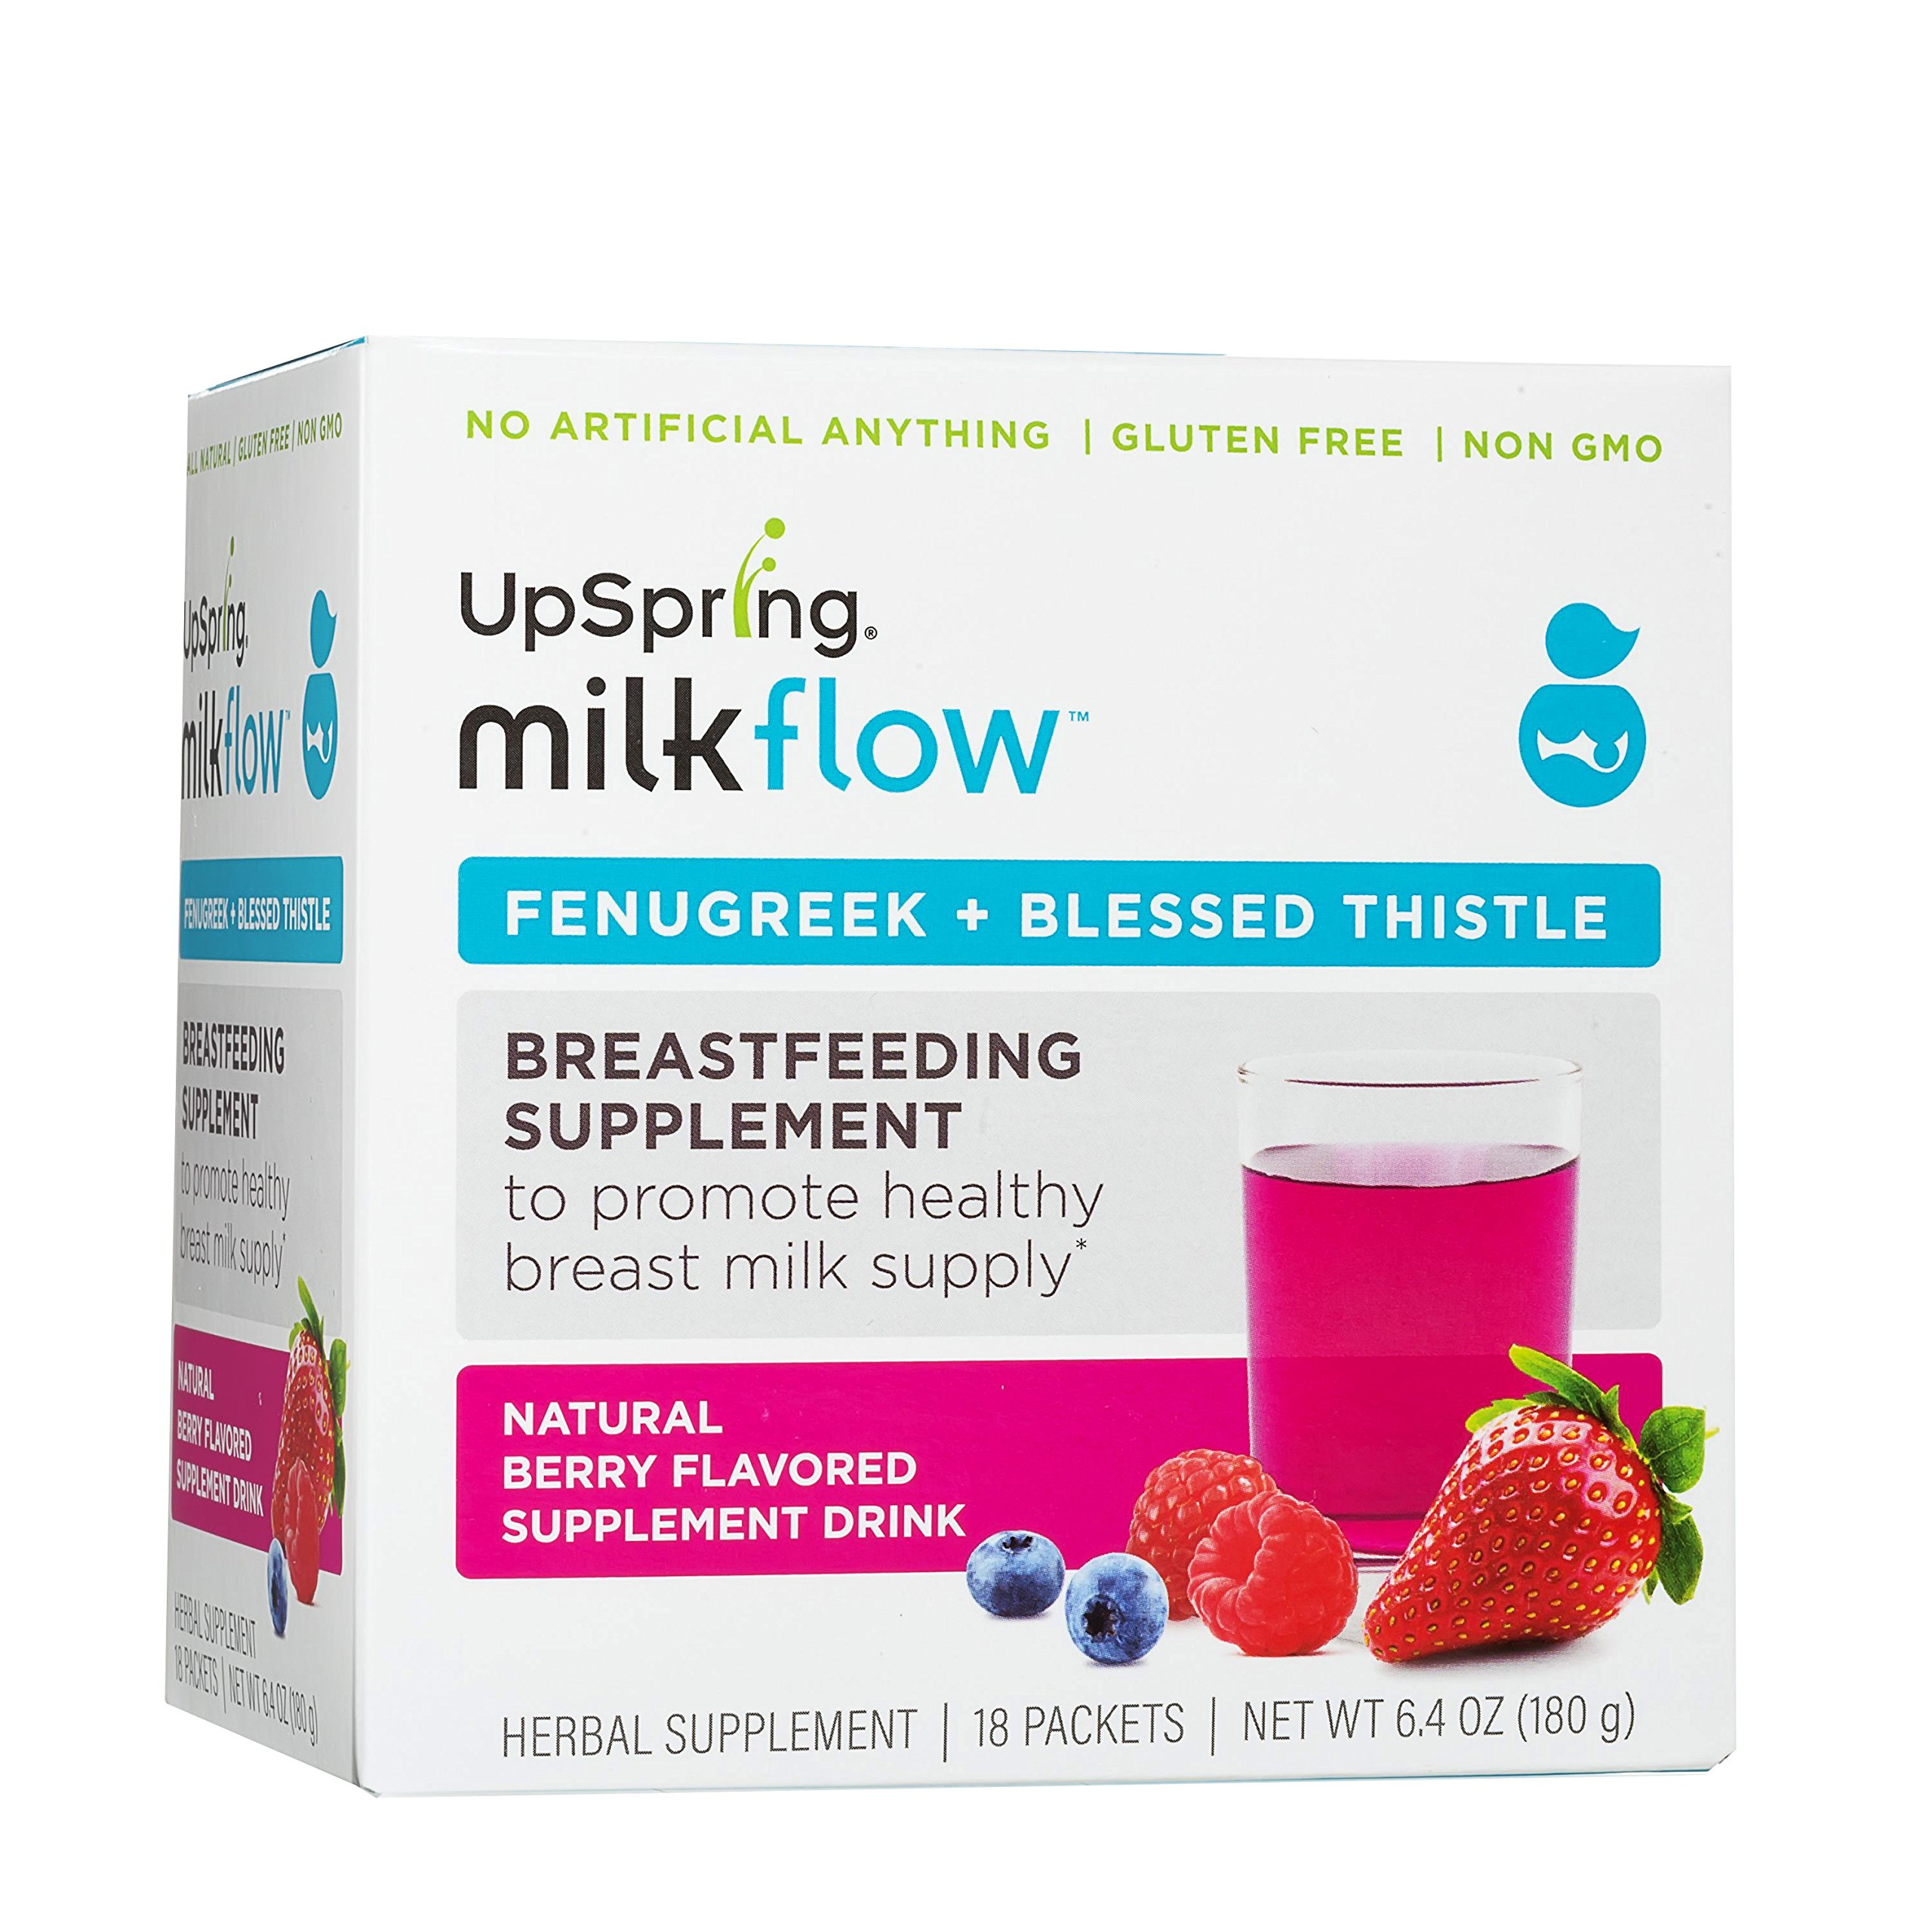 UpSpring Baby Milkflow Fenugreek and Blessed Thistle Powder Berry Drink Mix, 18 Count